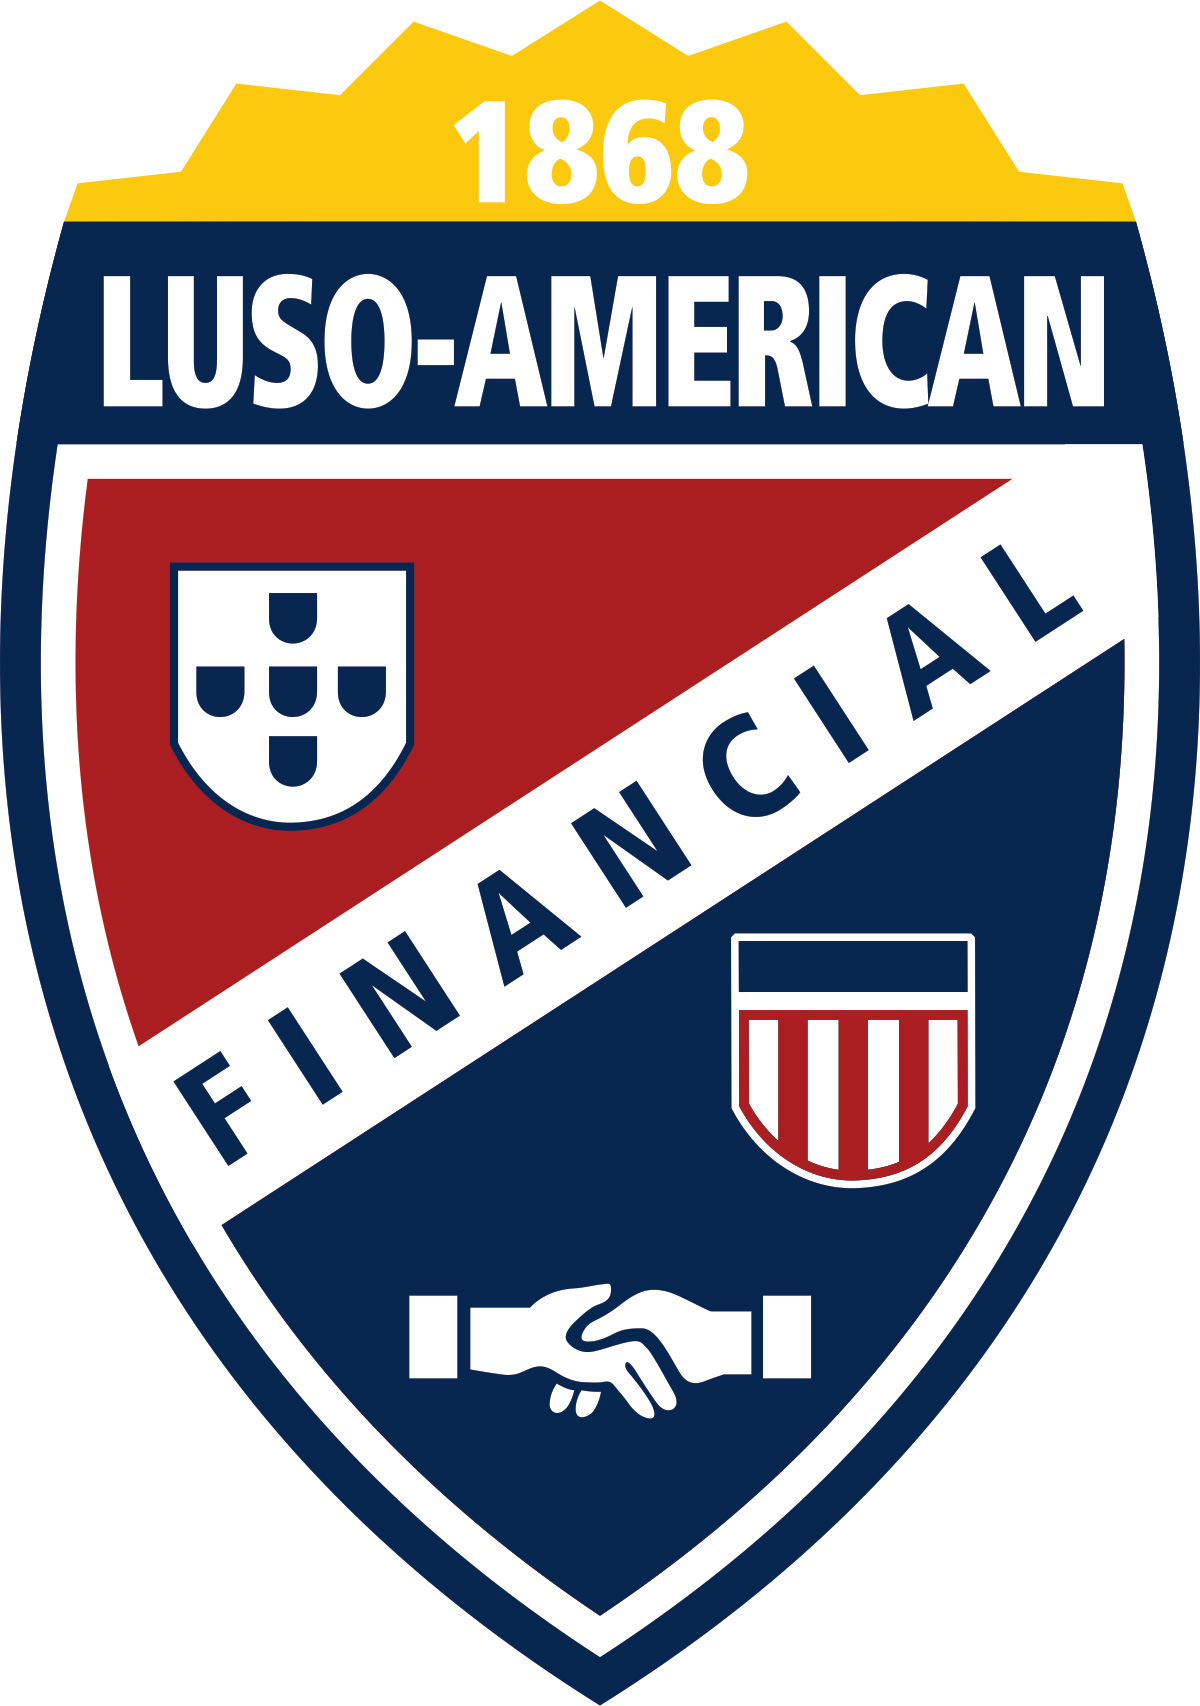 "Luso-American Financial is a Fraternal Benefit Society, the premier provider of life insurance products and fraternal services. With roots tracing back to 1868, through our network of fraternal councils and lodges, ""LUSO"" as we are affectionately known, has been helping generations of families thrive by promoting the fraternal, civic, cultural, social and educational ideals of the communities we live in.  In a nutshell, LUSO is a world where Family Values prevail - a world where we Stand by and Believe in our Young People and ultimately a world where the Portuguese Language & Culture are kept alive for Future Generations."